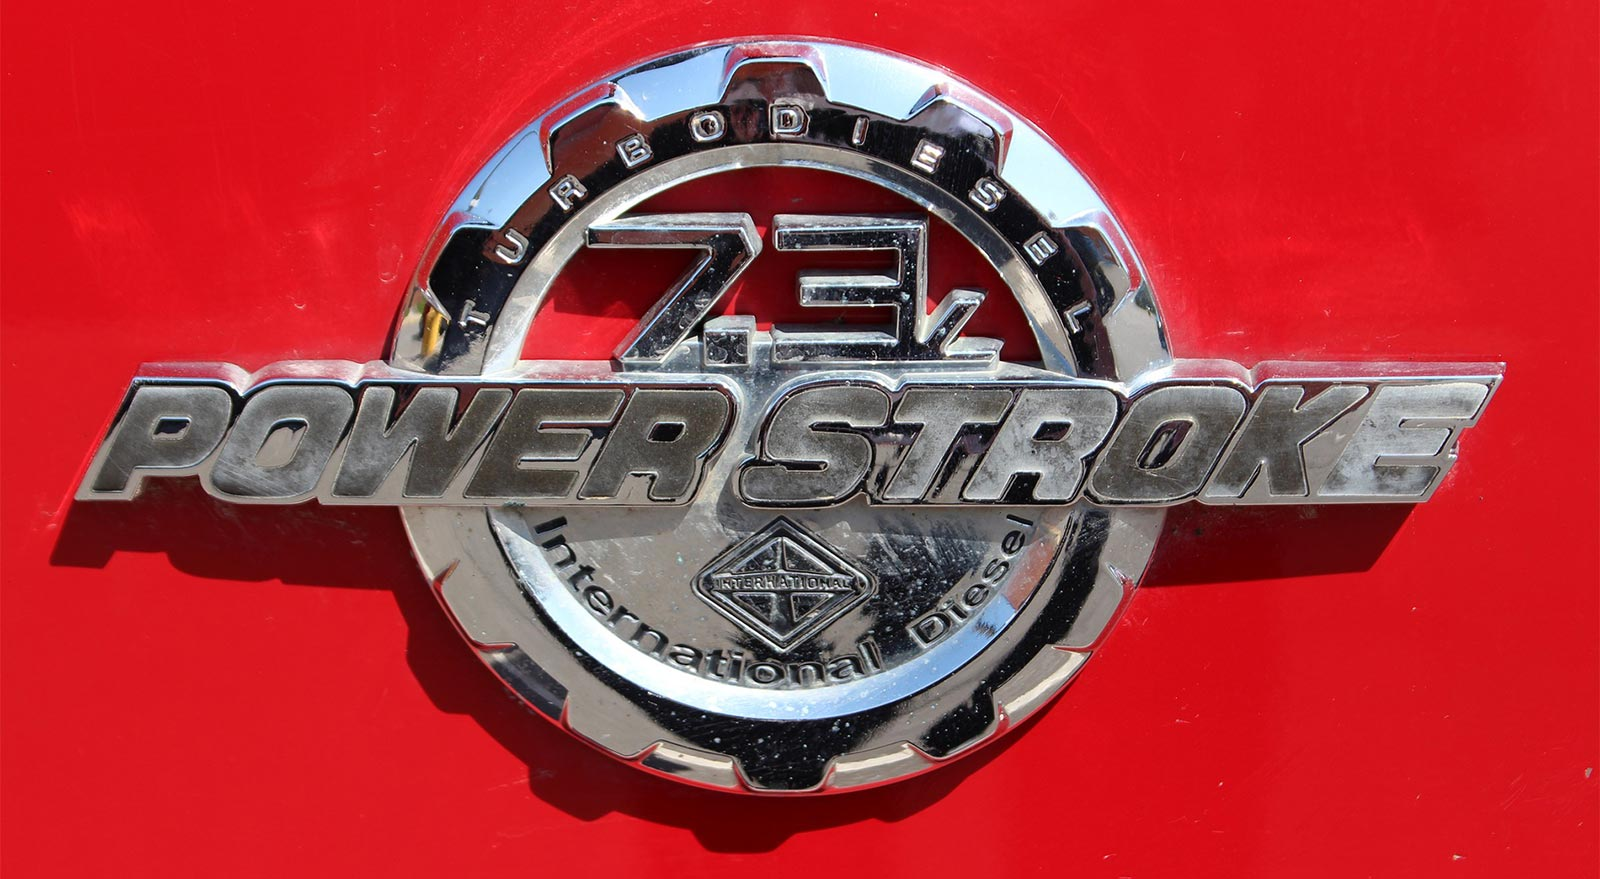 A History of the Ford Powerstroke Diesel Engine